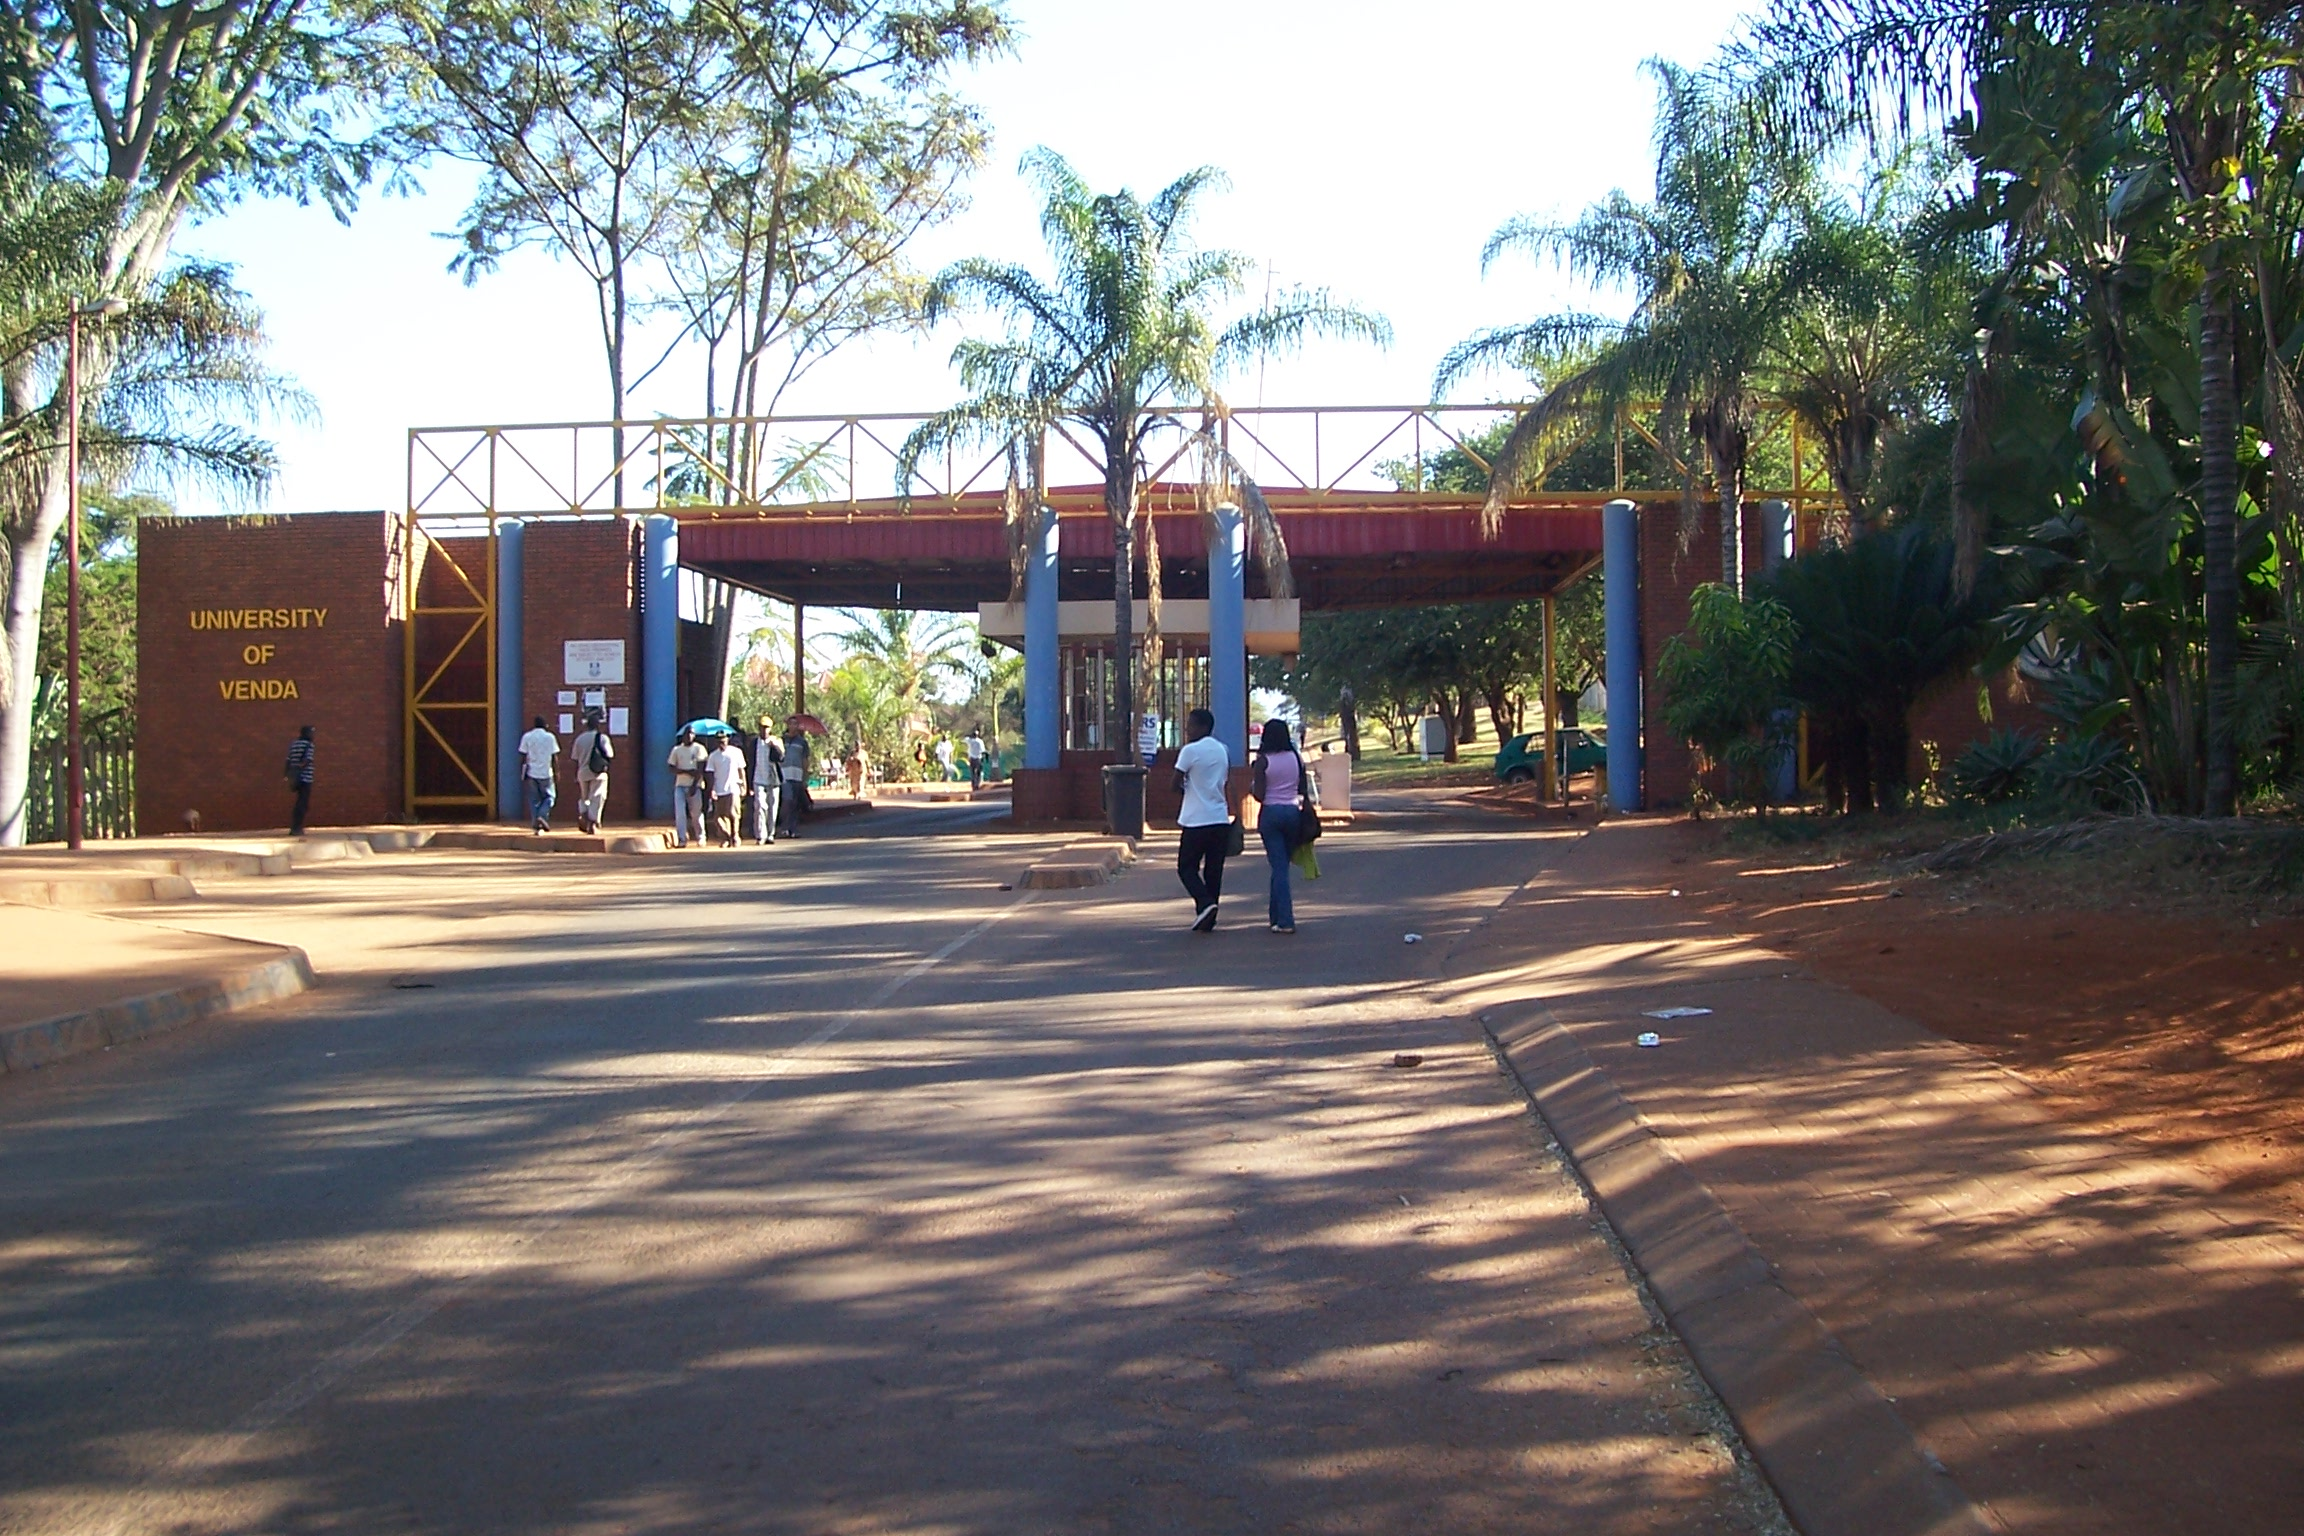 Description UniversityOfVenda.JPG